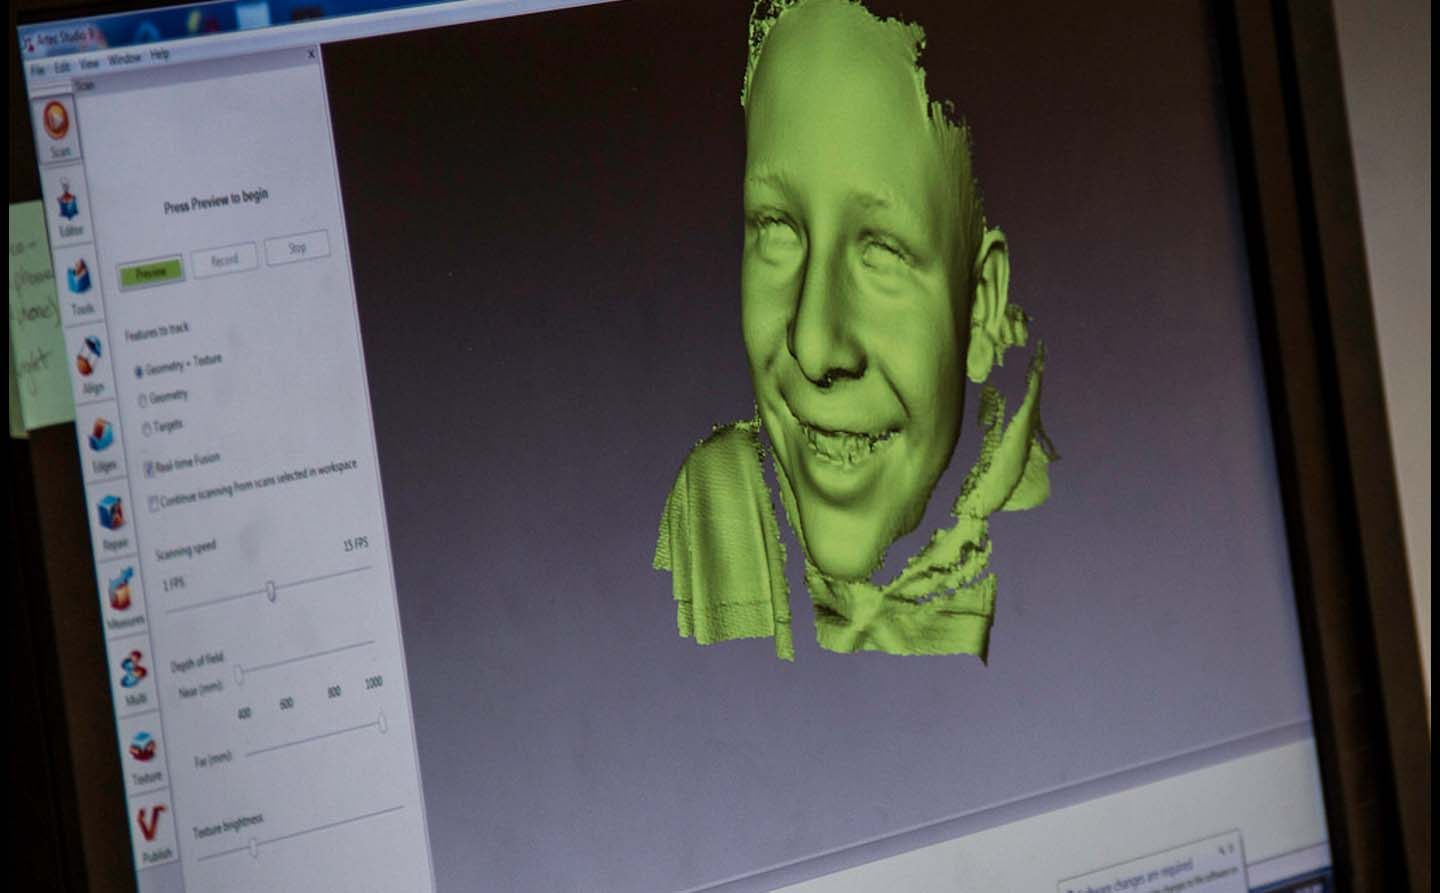 Screenview of a child face's being 3D scanned at DeLaMare Library